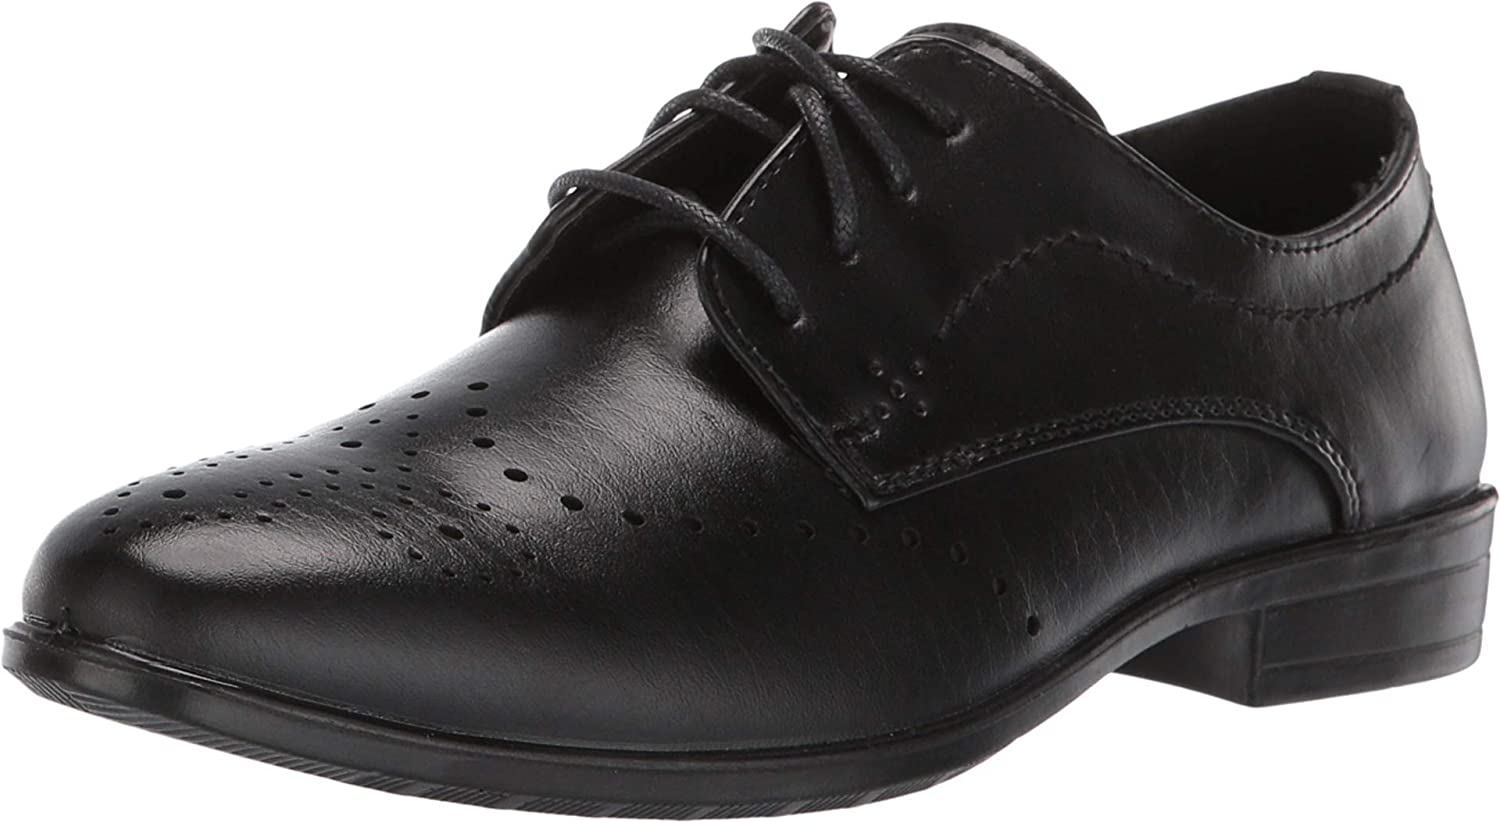 Deer Stags Unisex-Child Oxford